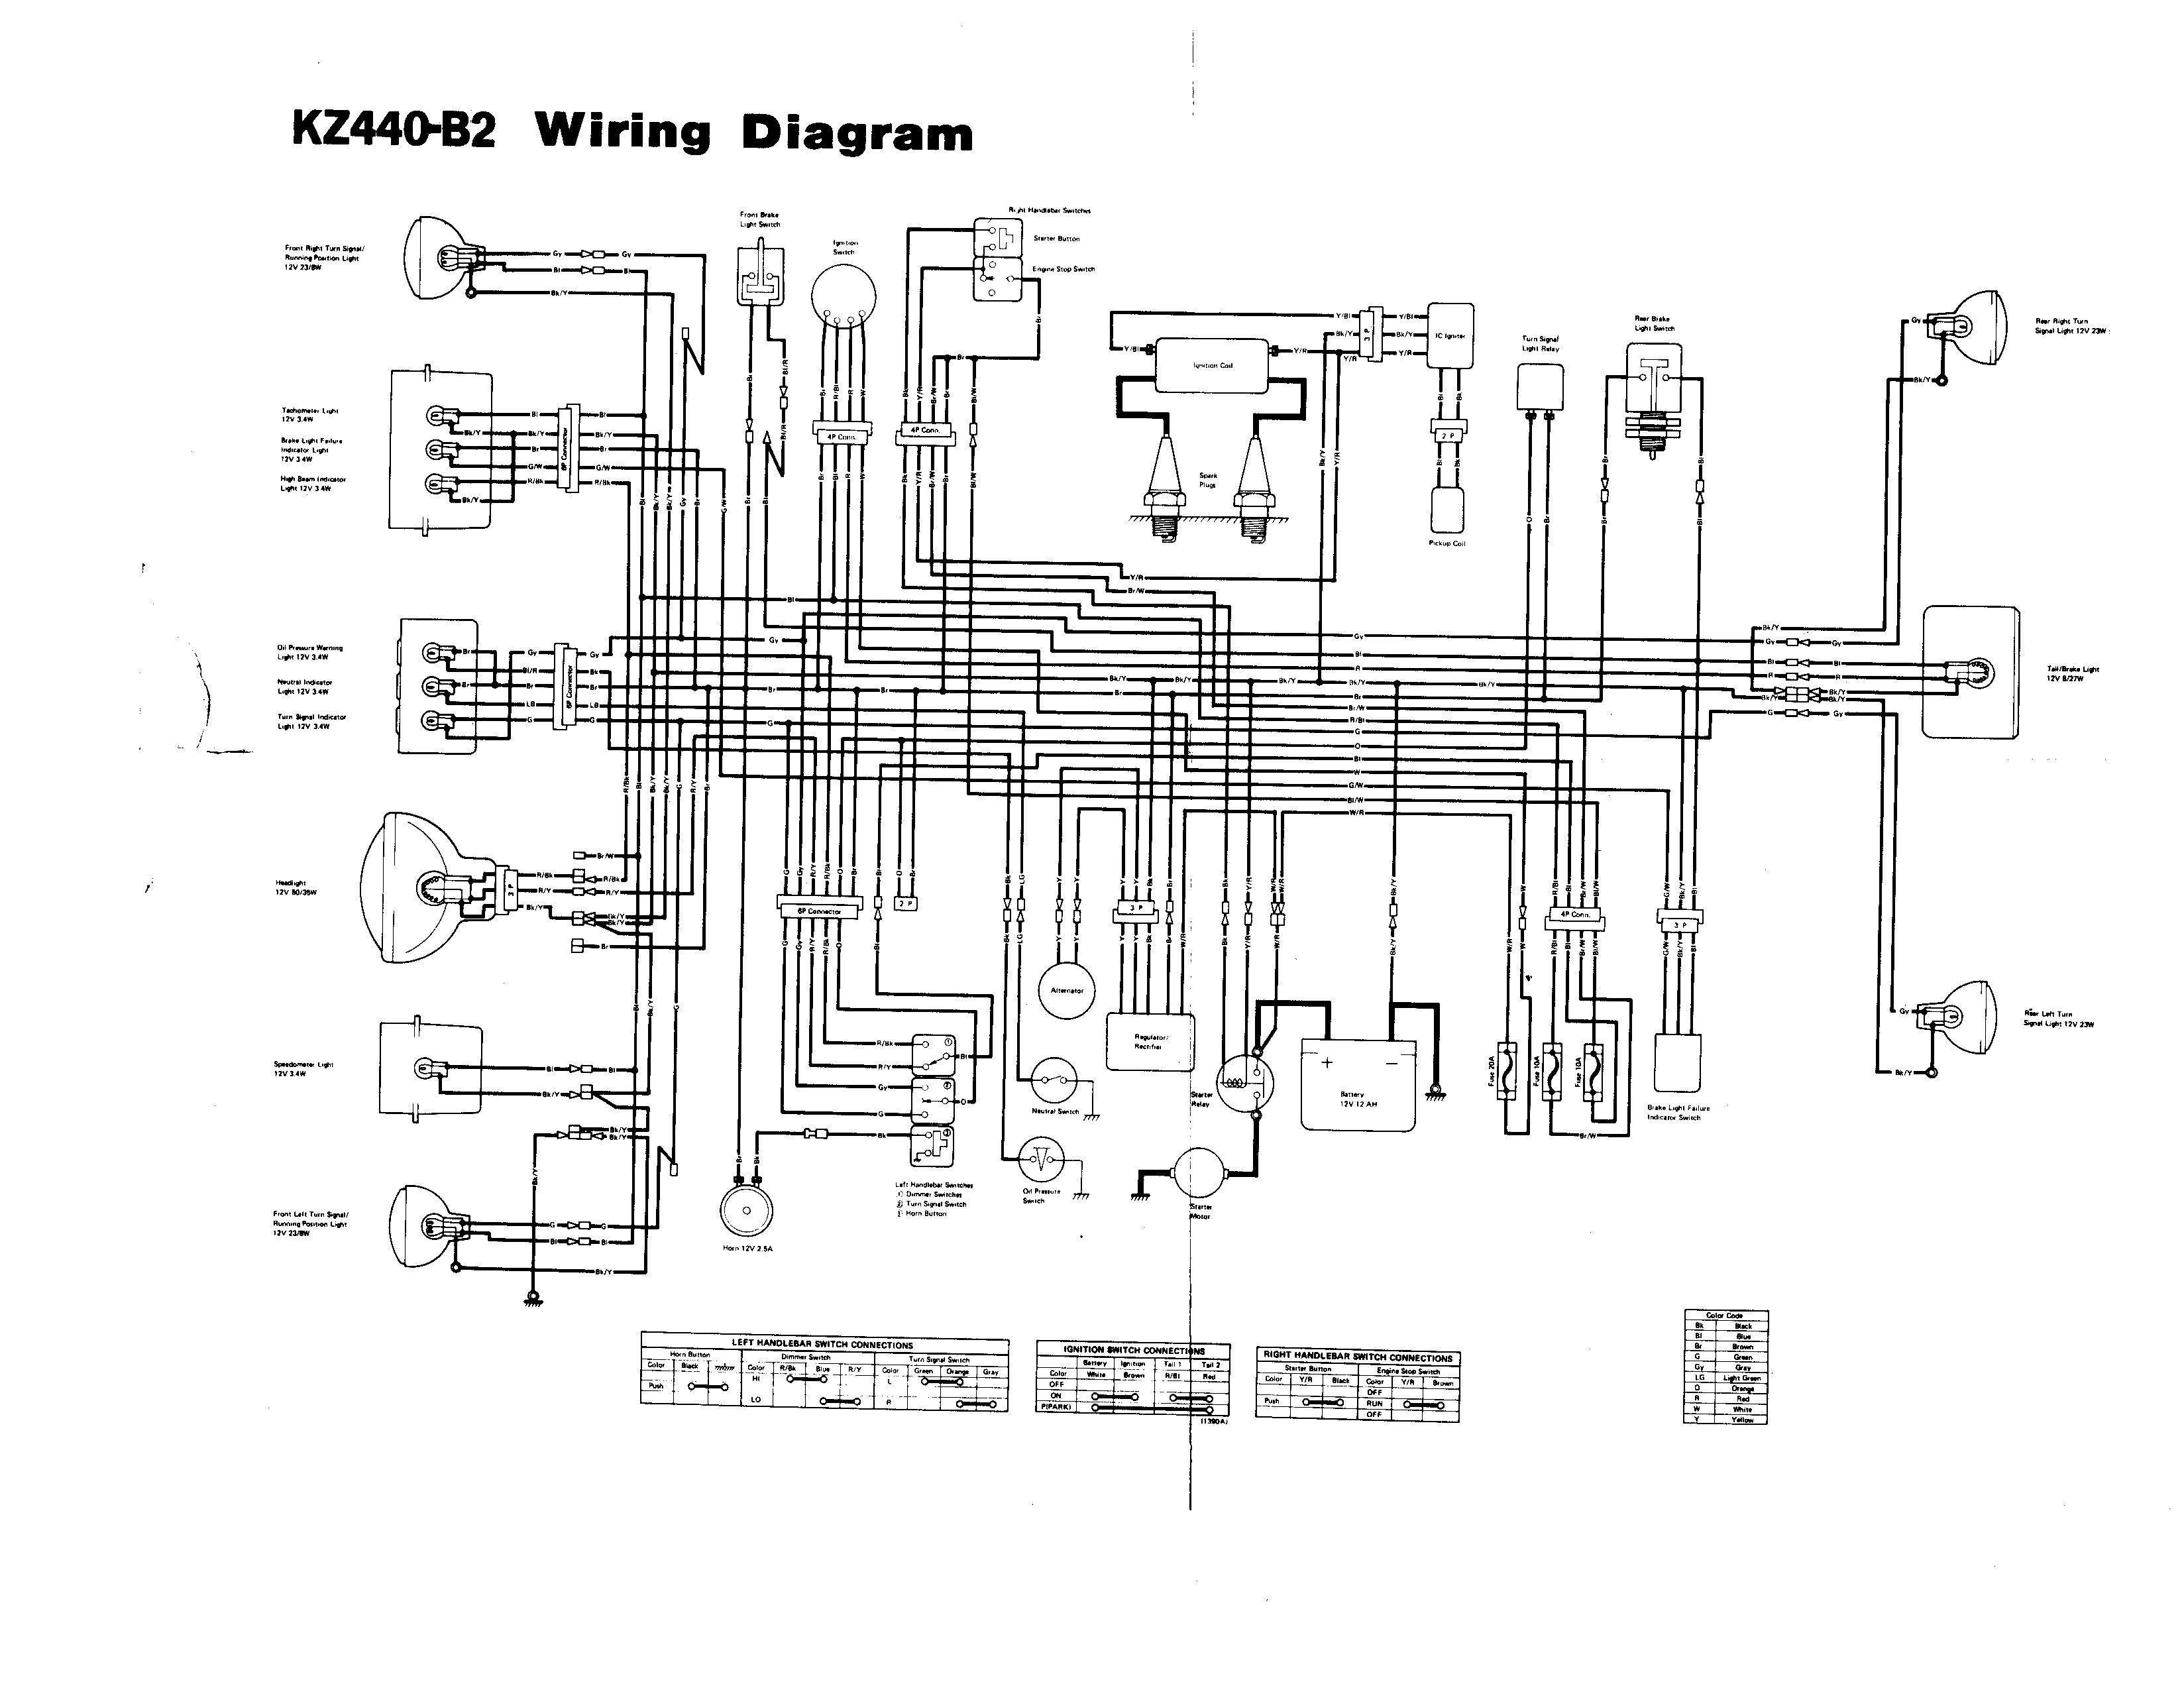 Hyster Forklift S50xm Wiring Diagram - 1964 Cummins Wiring Diagram  sonycdx-wirings.au-delice-limousin.fr   Hyster Forklift S50xm Wiring Diagram      Bege Wiring Diagram - Bege Wiring Diagram Full Edition